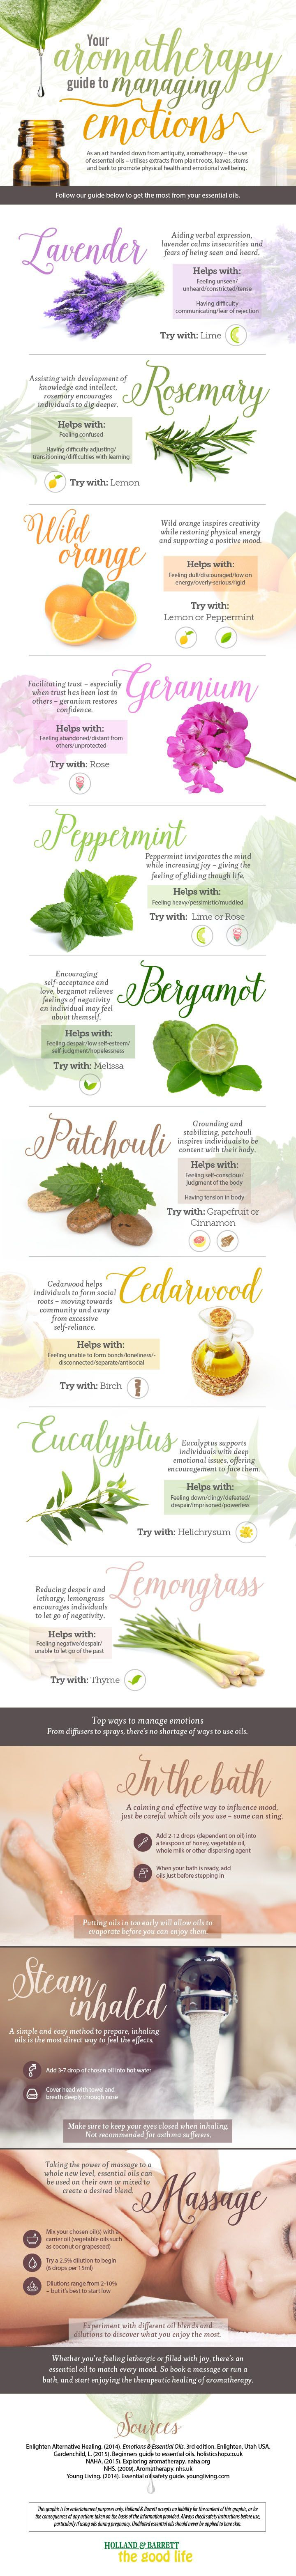 What things does aromatherapy help?